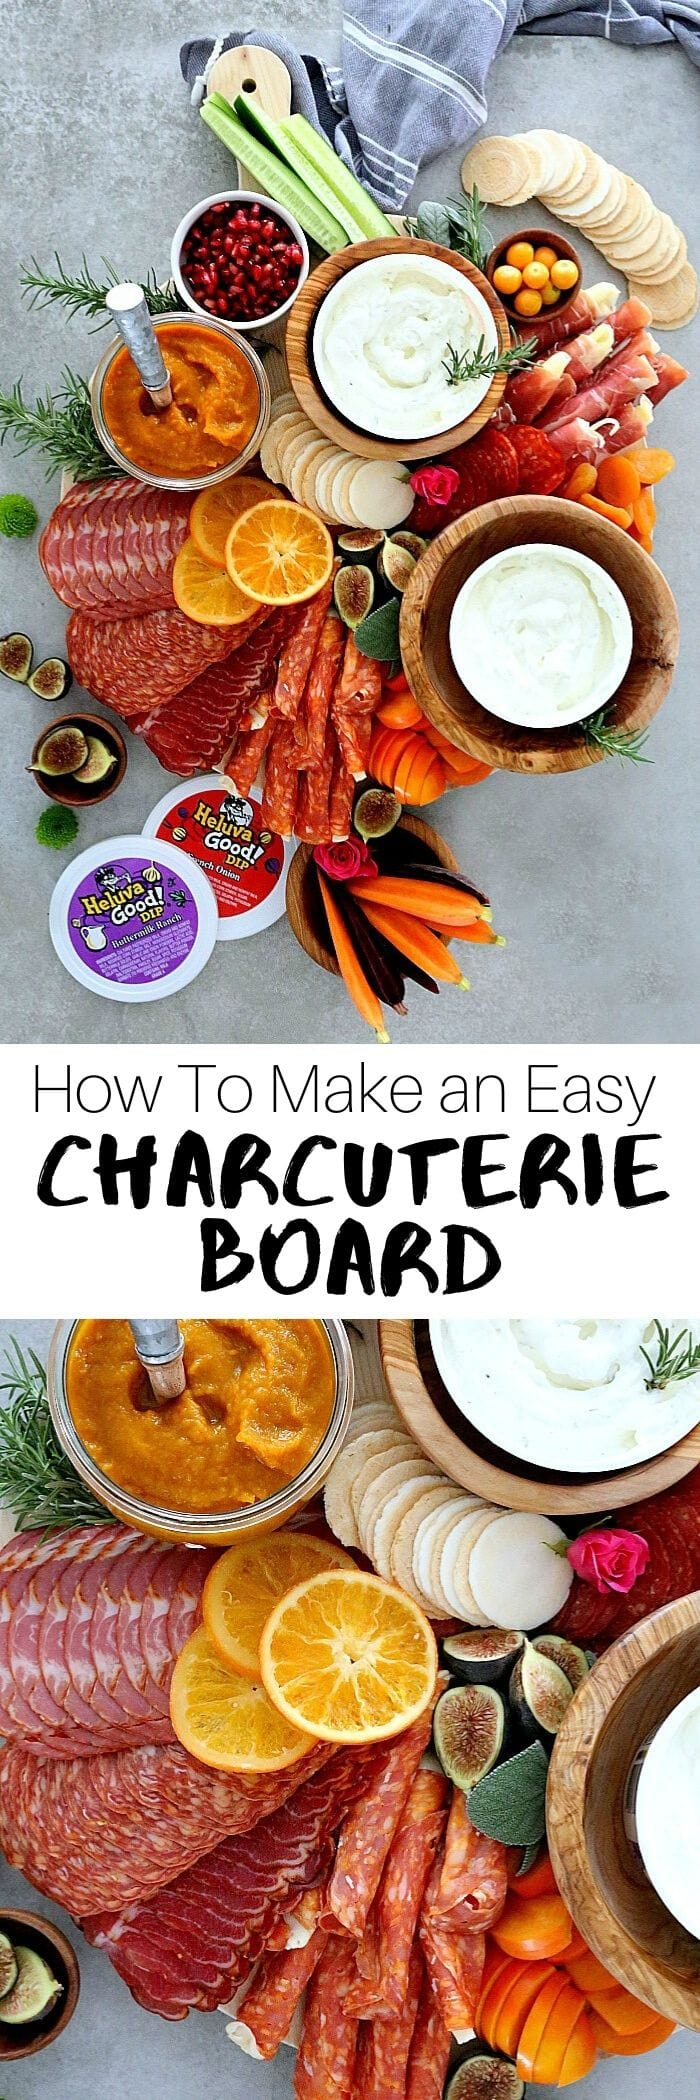 Celebrate and host a party with this Charcuterie board! This winning Charcuterie platter is loaded with meats, dried fruit, the perfect dips, gluten-free crackers and tips on how to make the perfect holiday Charcuterie board- the greatest focal point to every party!#charcuterieboard #charcuterie #glutenfree #recipe #wholesome #appetizer | Recipe at Delightful Mom Food